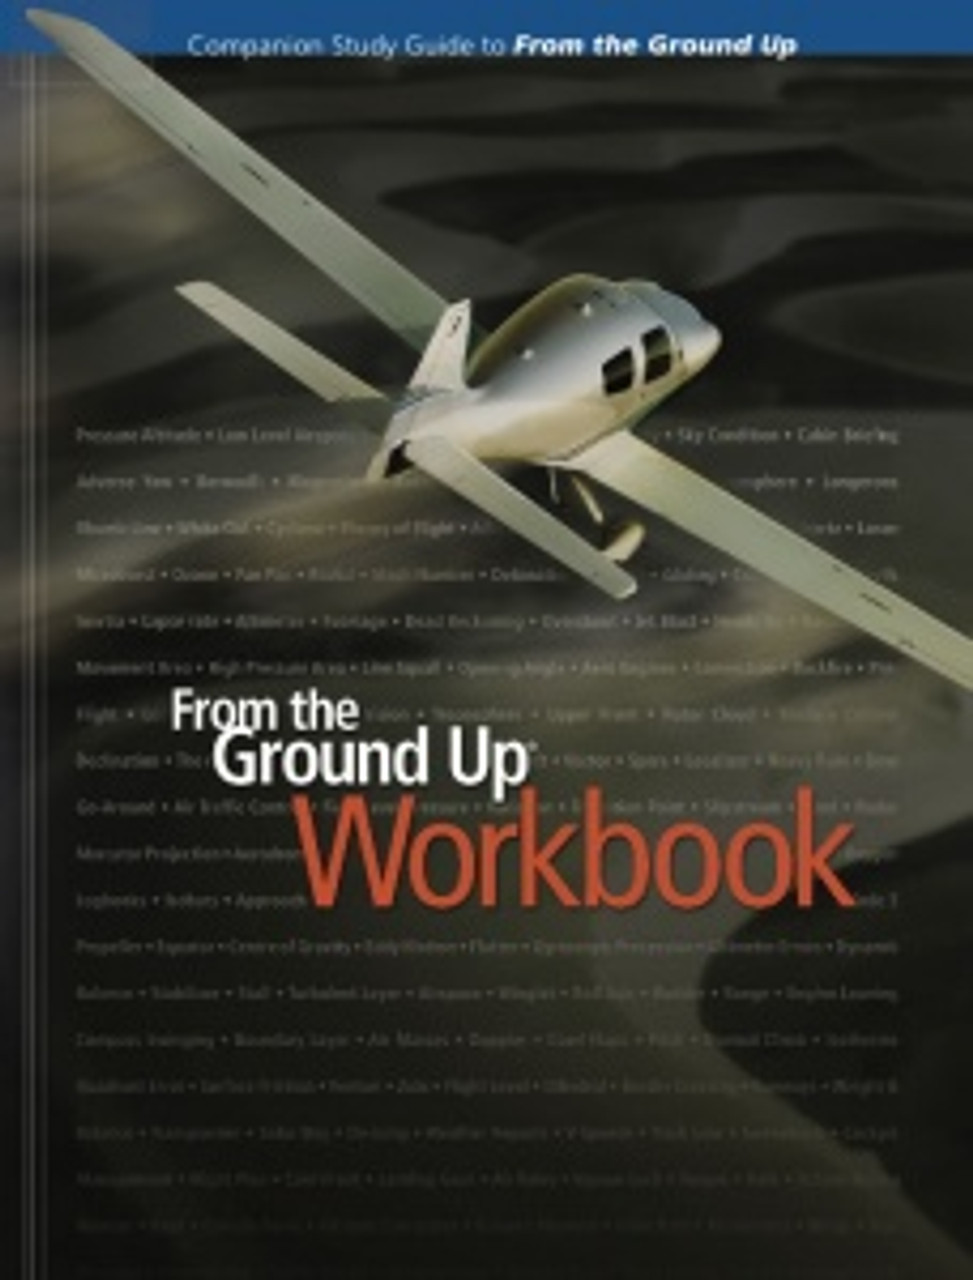 From The Ground Up from the ground up workbook